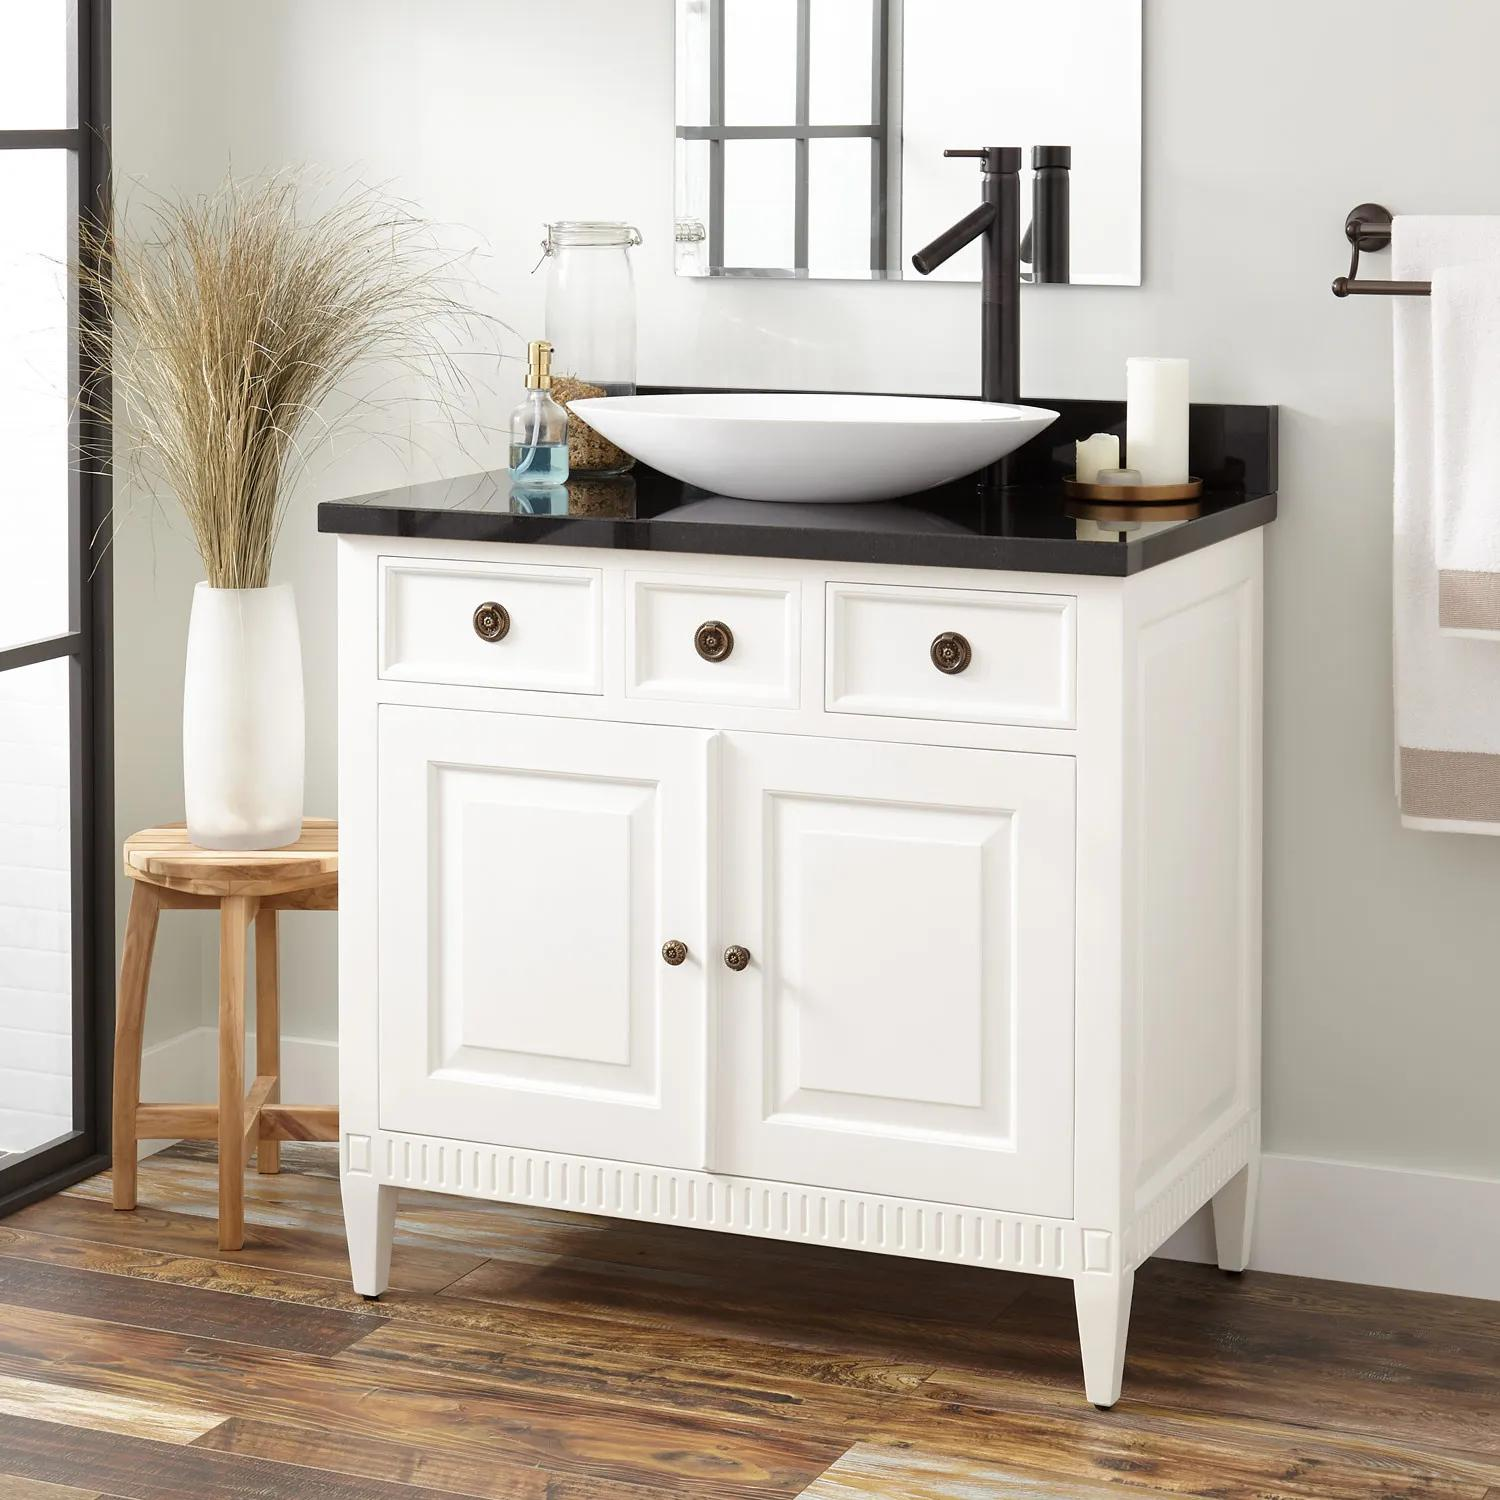 36 Hawkins Mahogany Vessel Sink Vanity White Bathroom